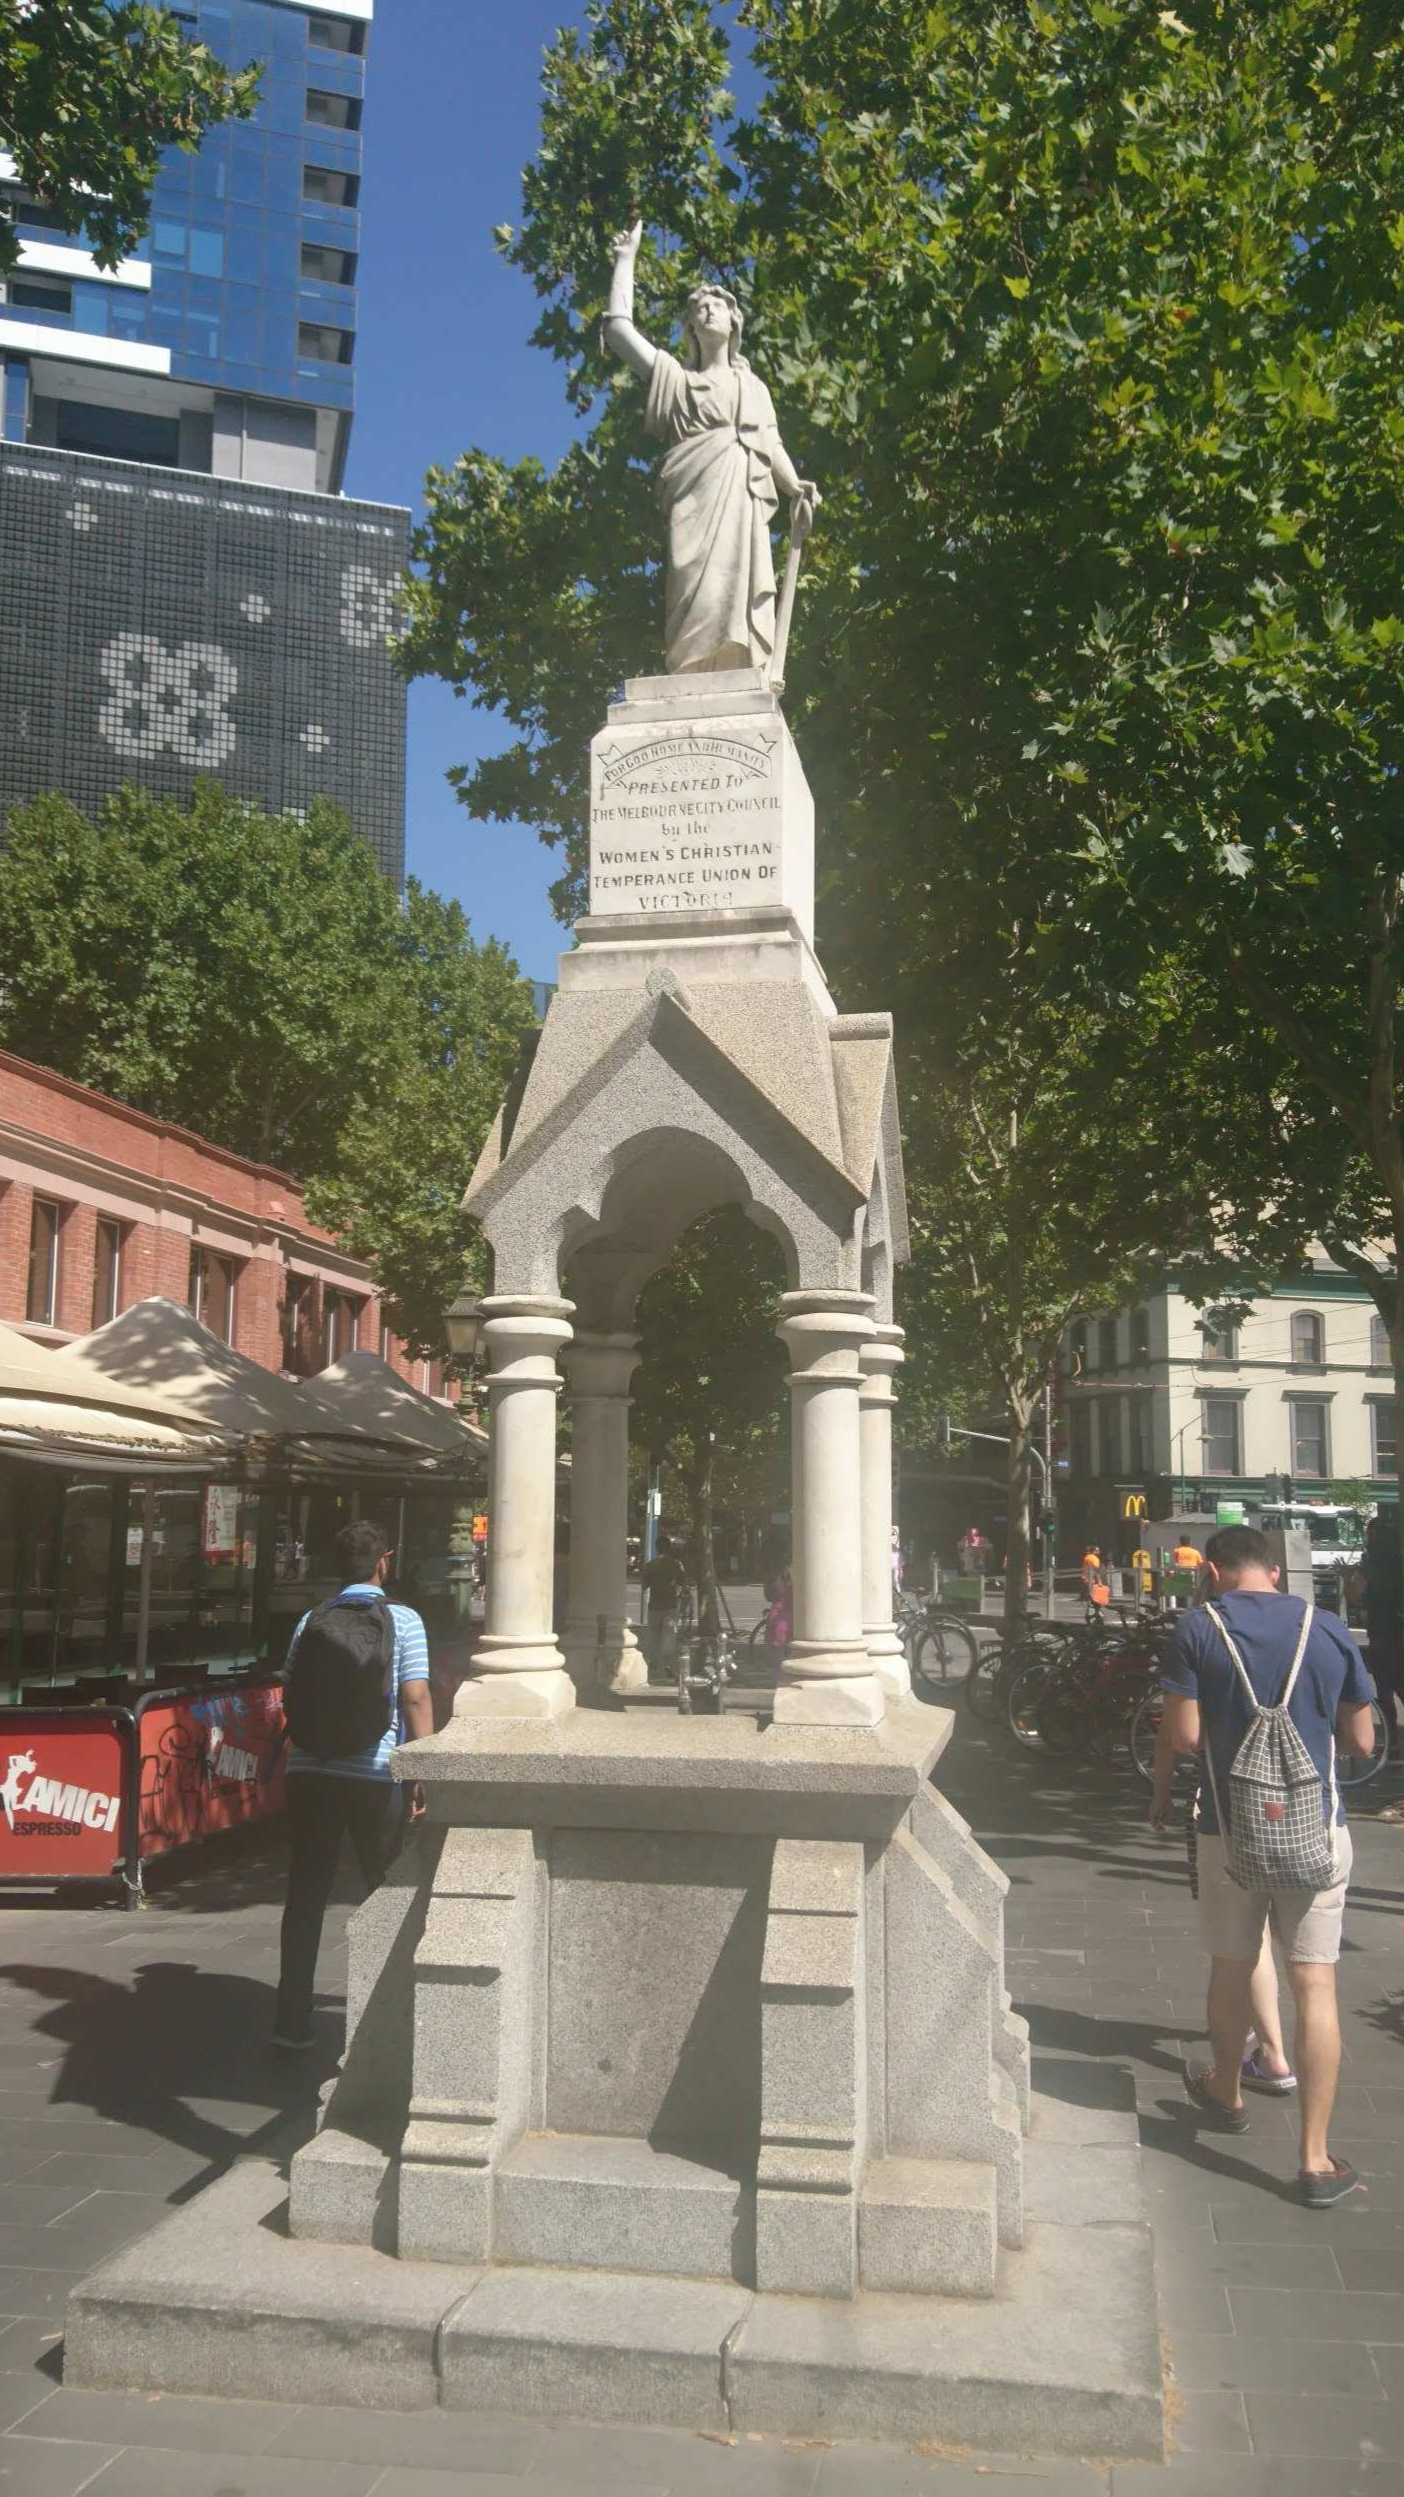 Statue commemorating the WCTUA in Melbourne